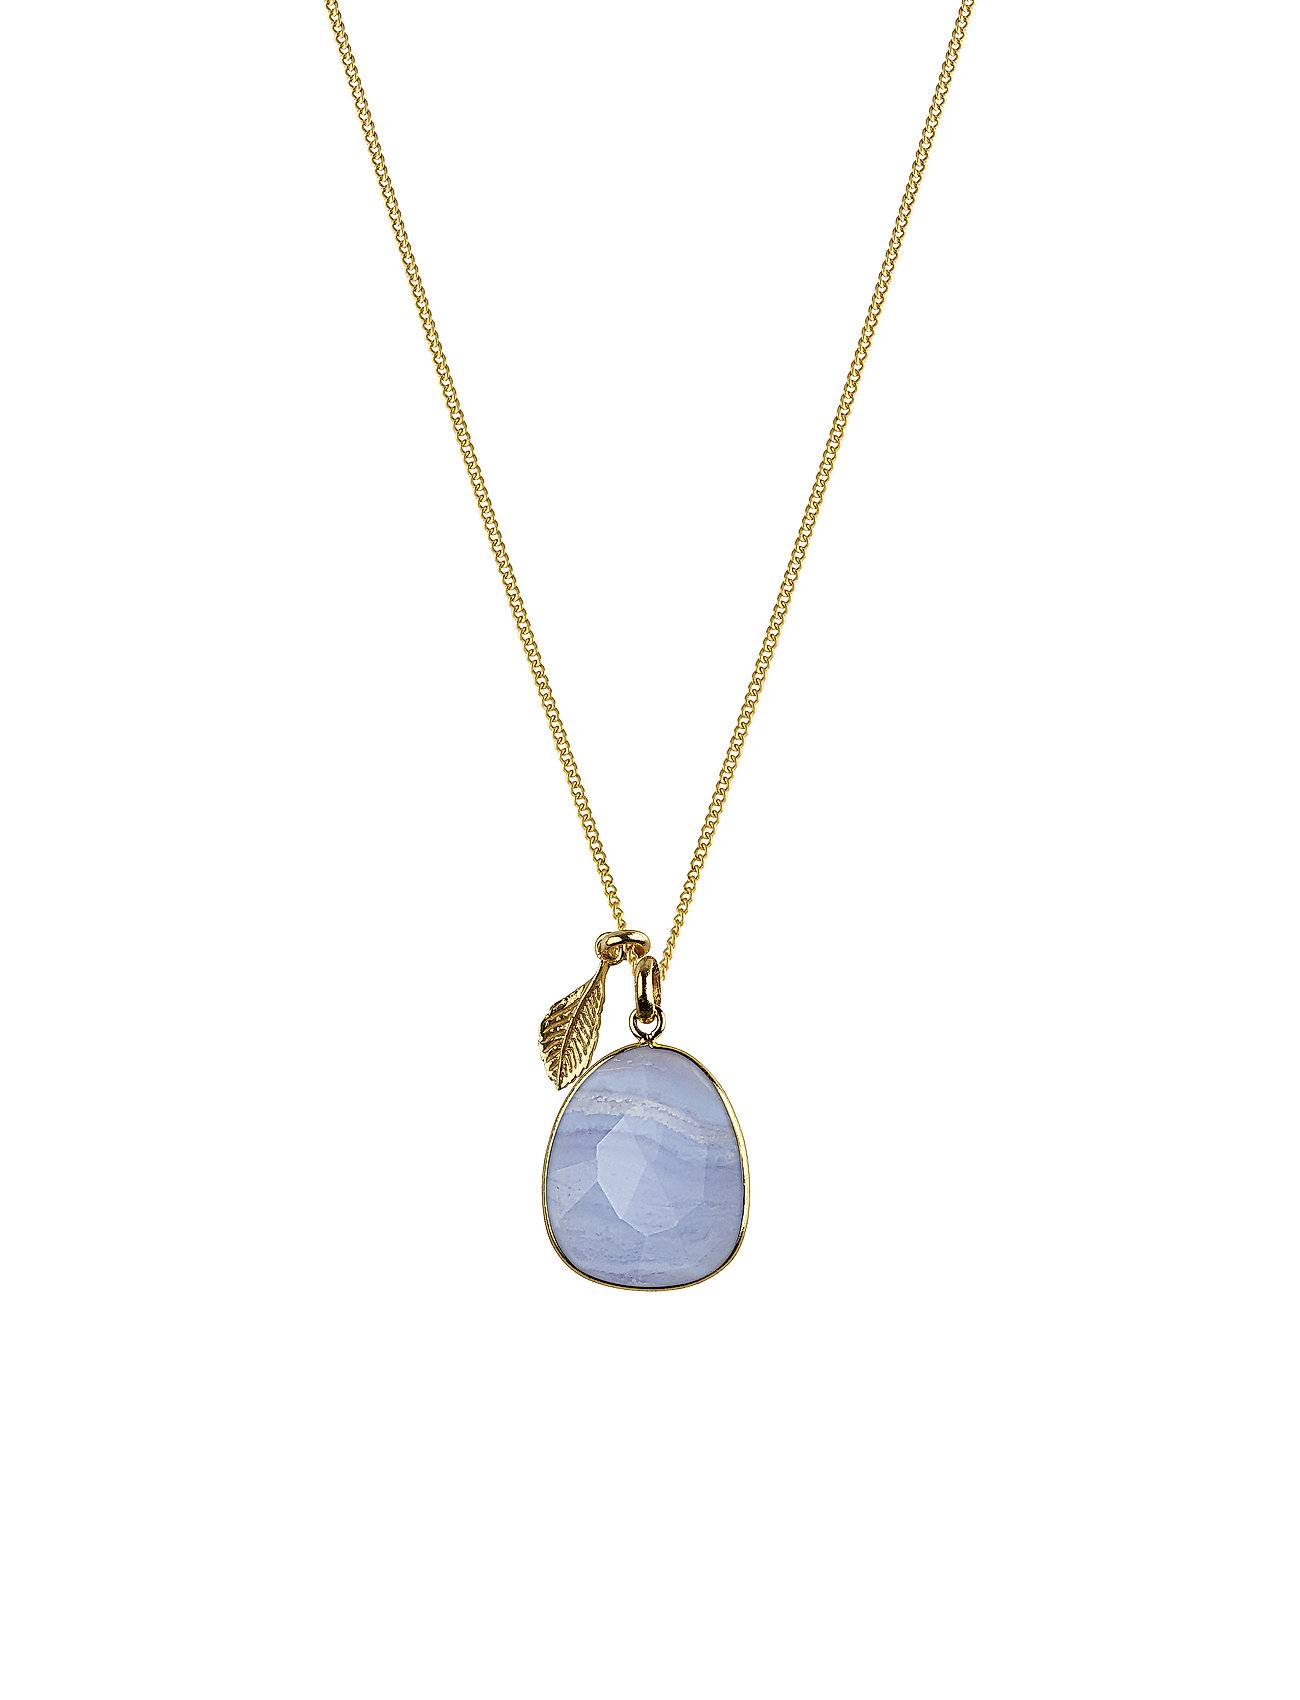 Syster P Glam Glam Necklace Gold, Blue Lace Agate